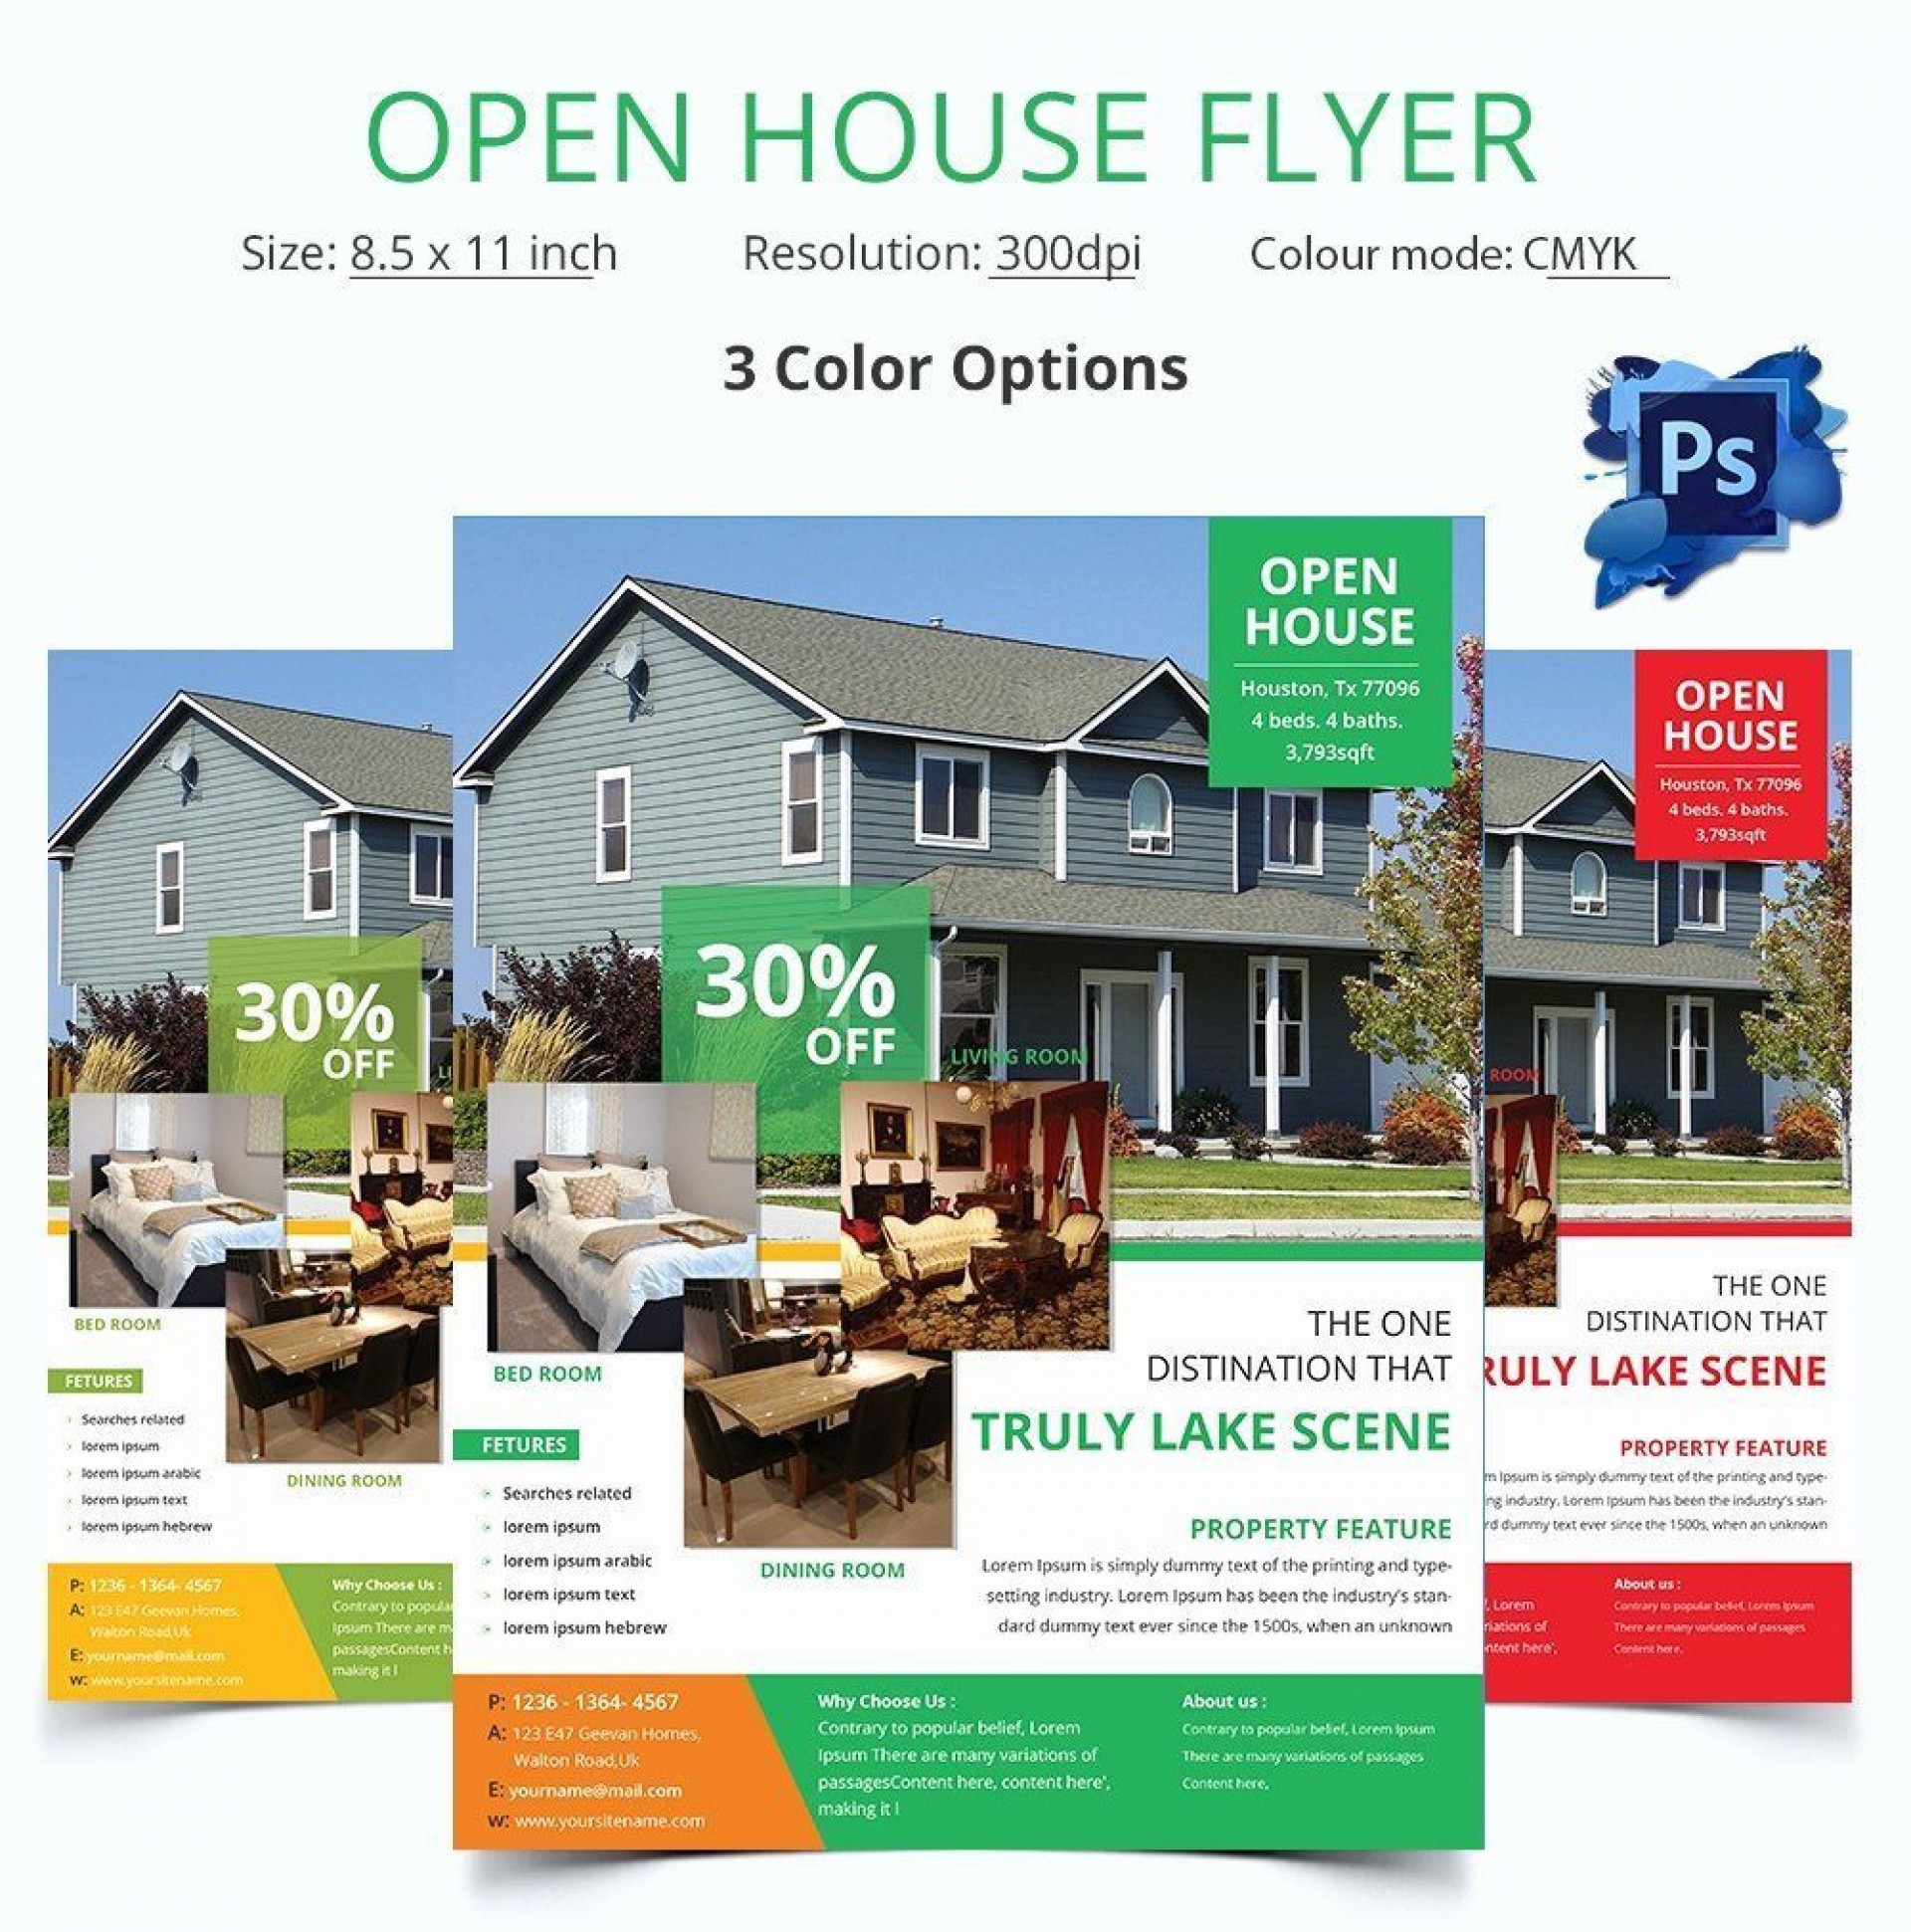 006 Formidable Open House Flyer Template Free Concept  Microsoft Word School Christma1920